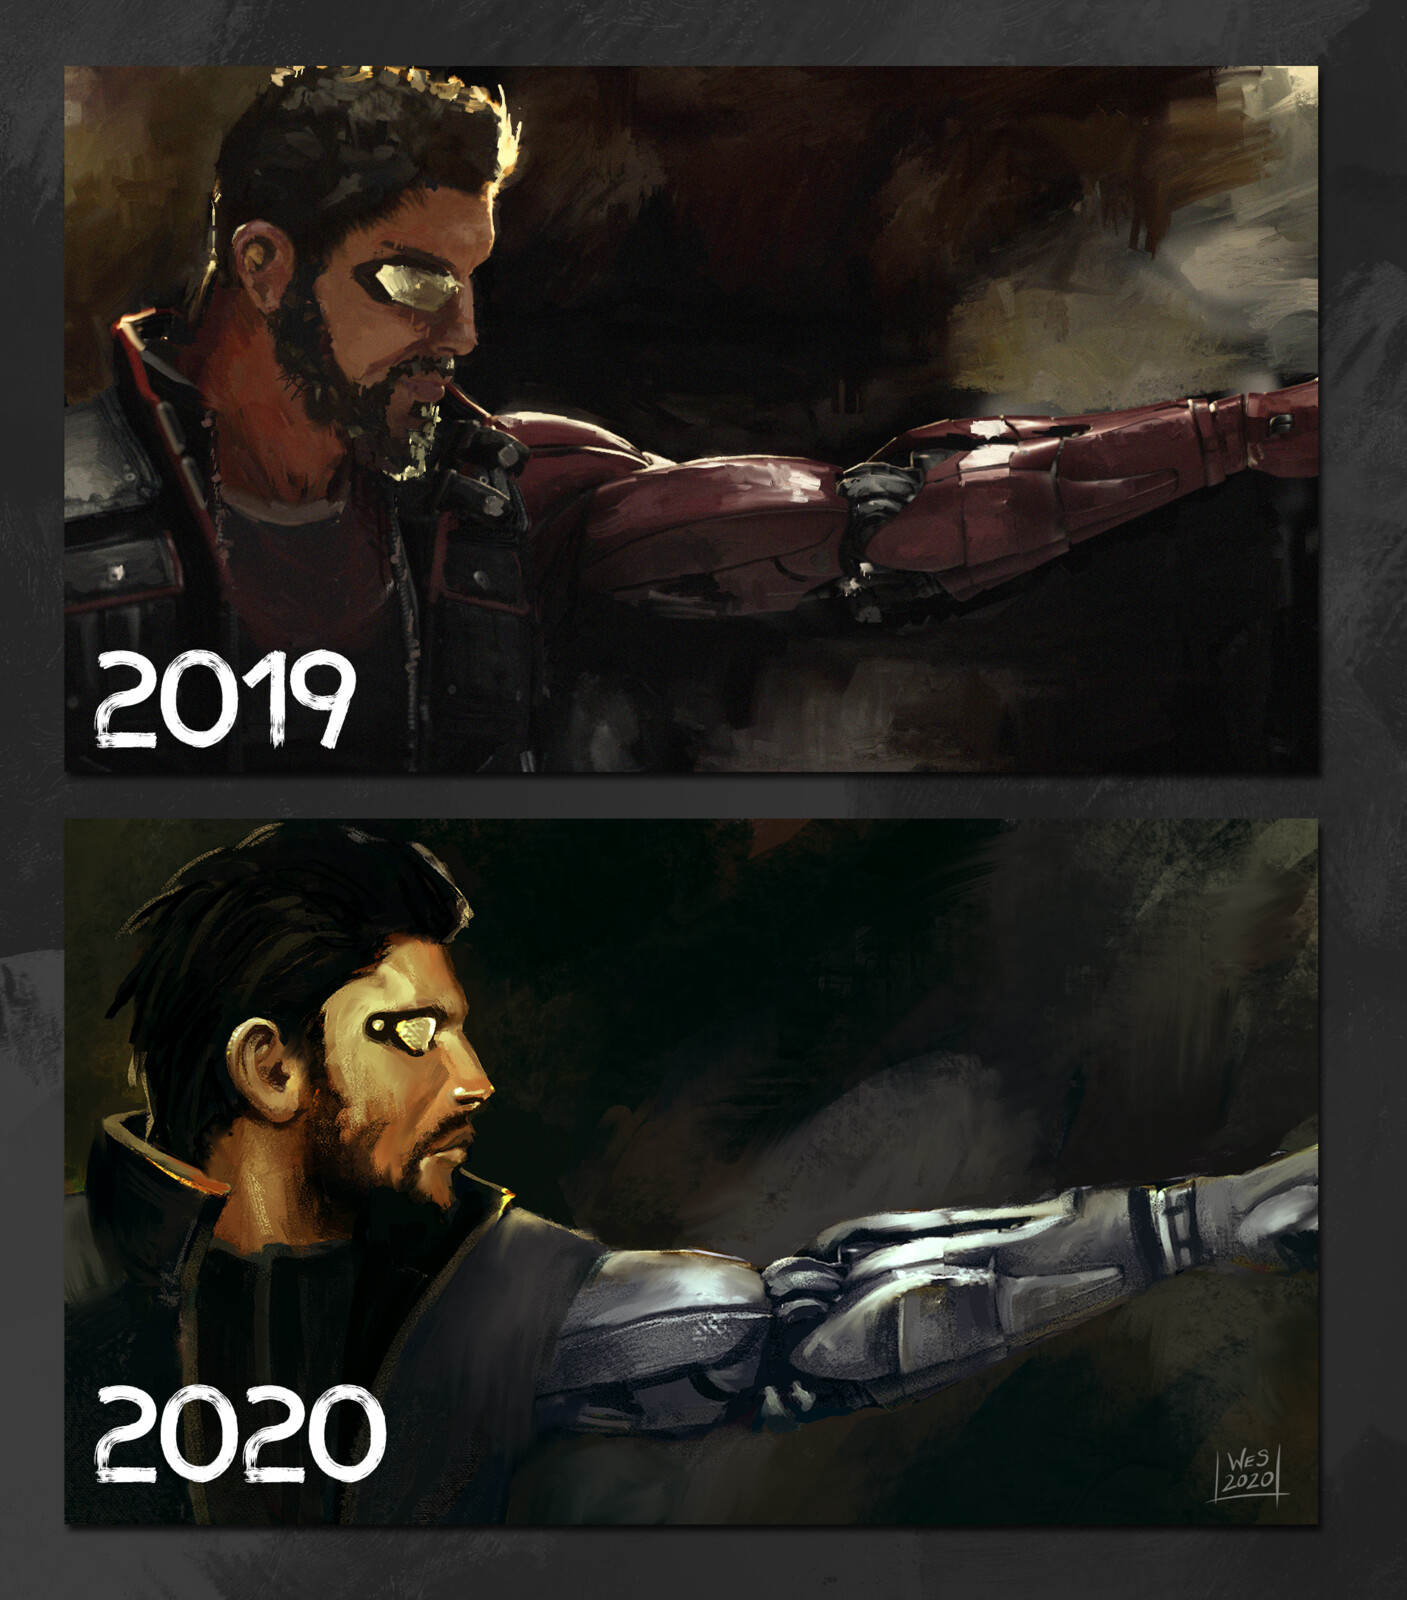 Comparison with the original from 2019